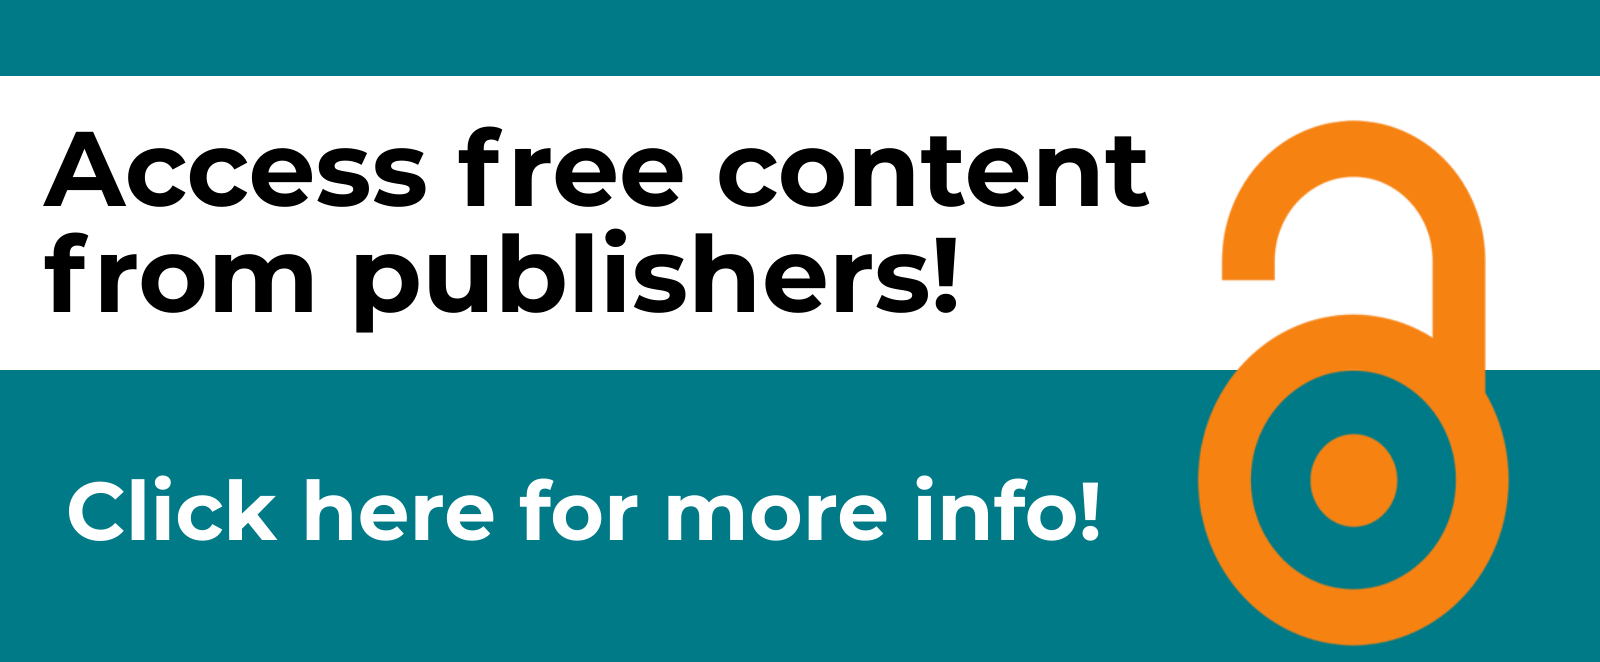 Access free content from publishers - click here